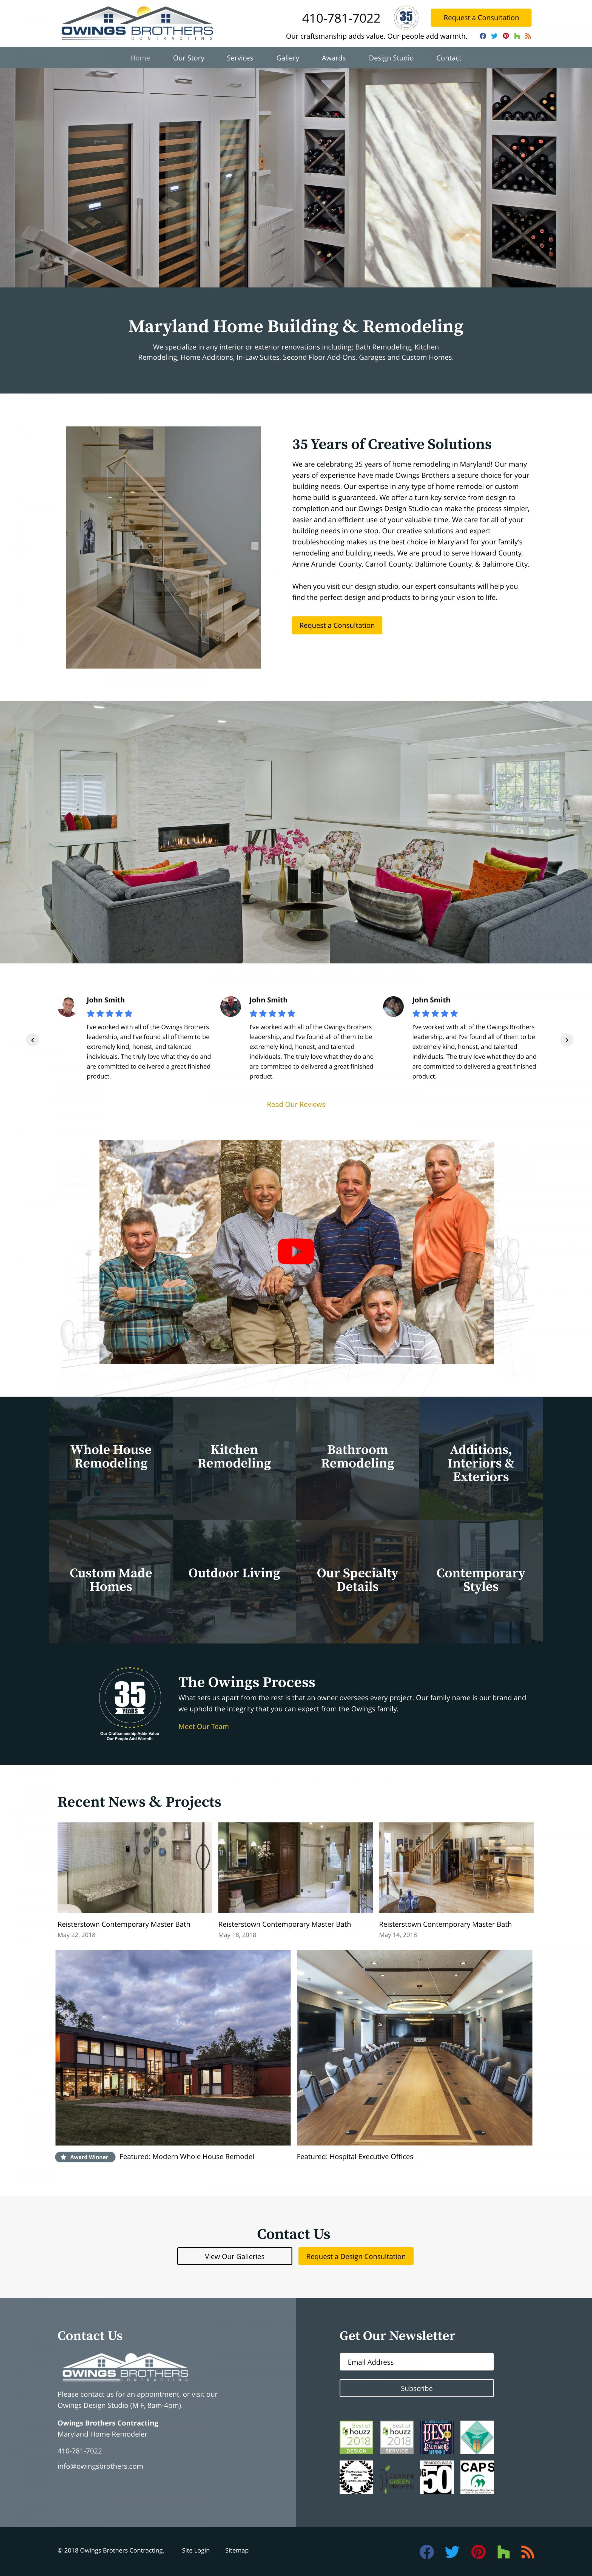 owingsbrothers.com home page